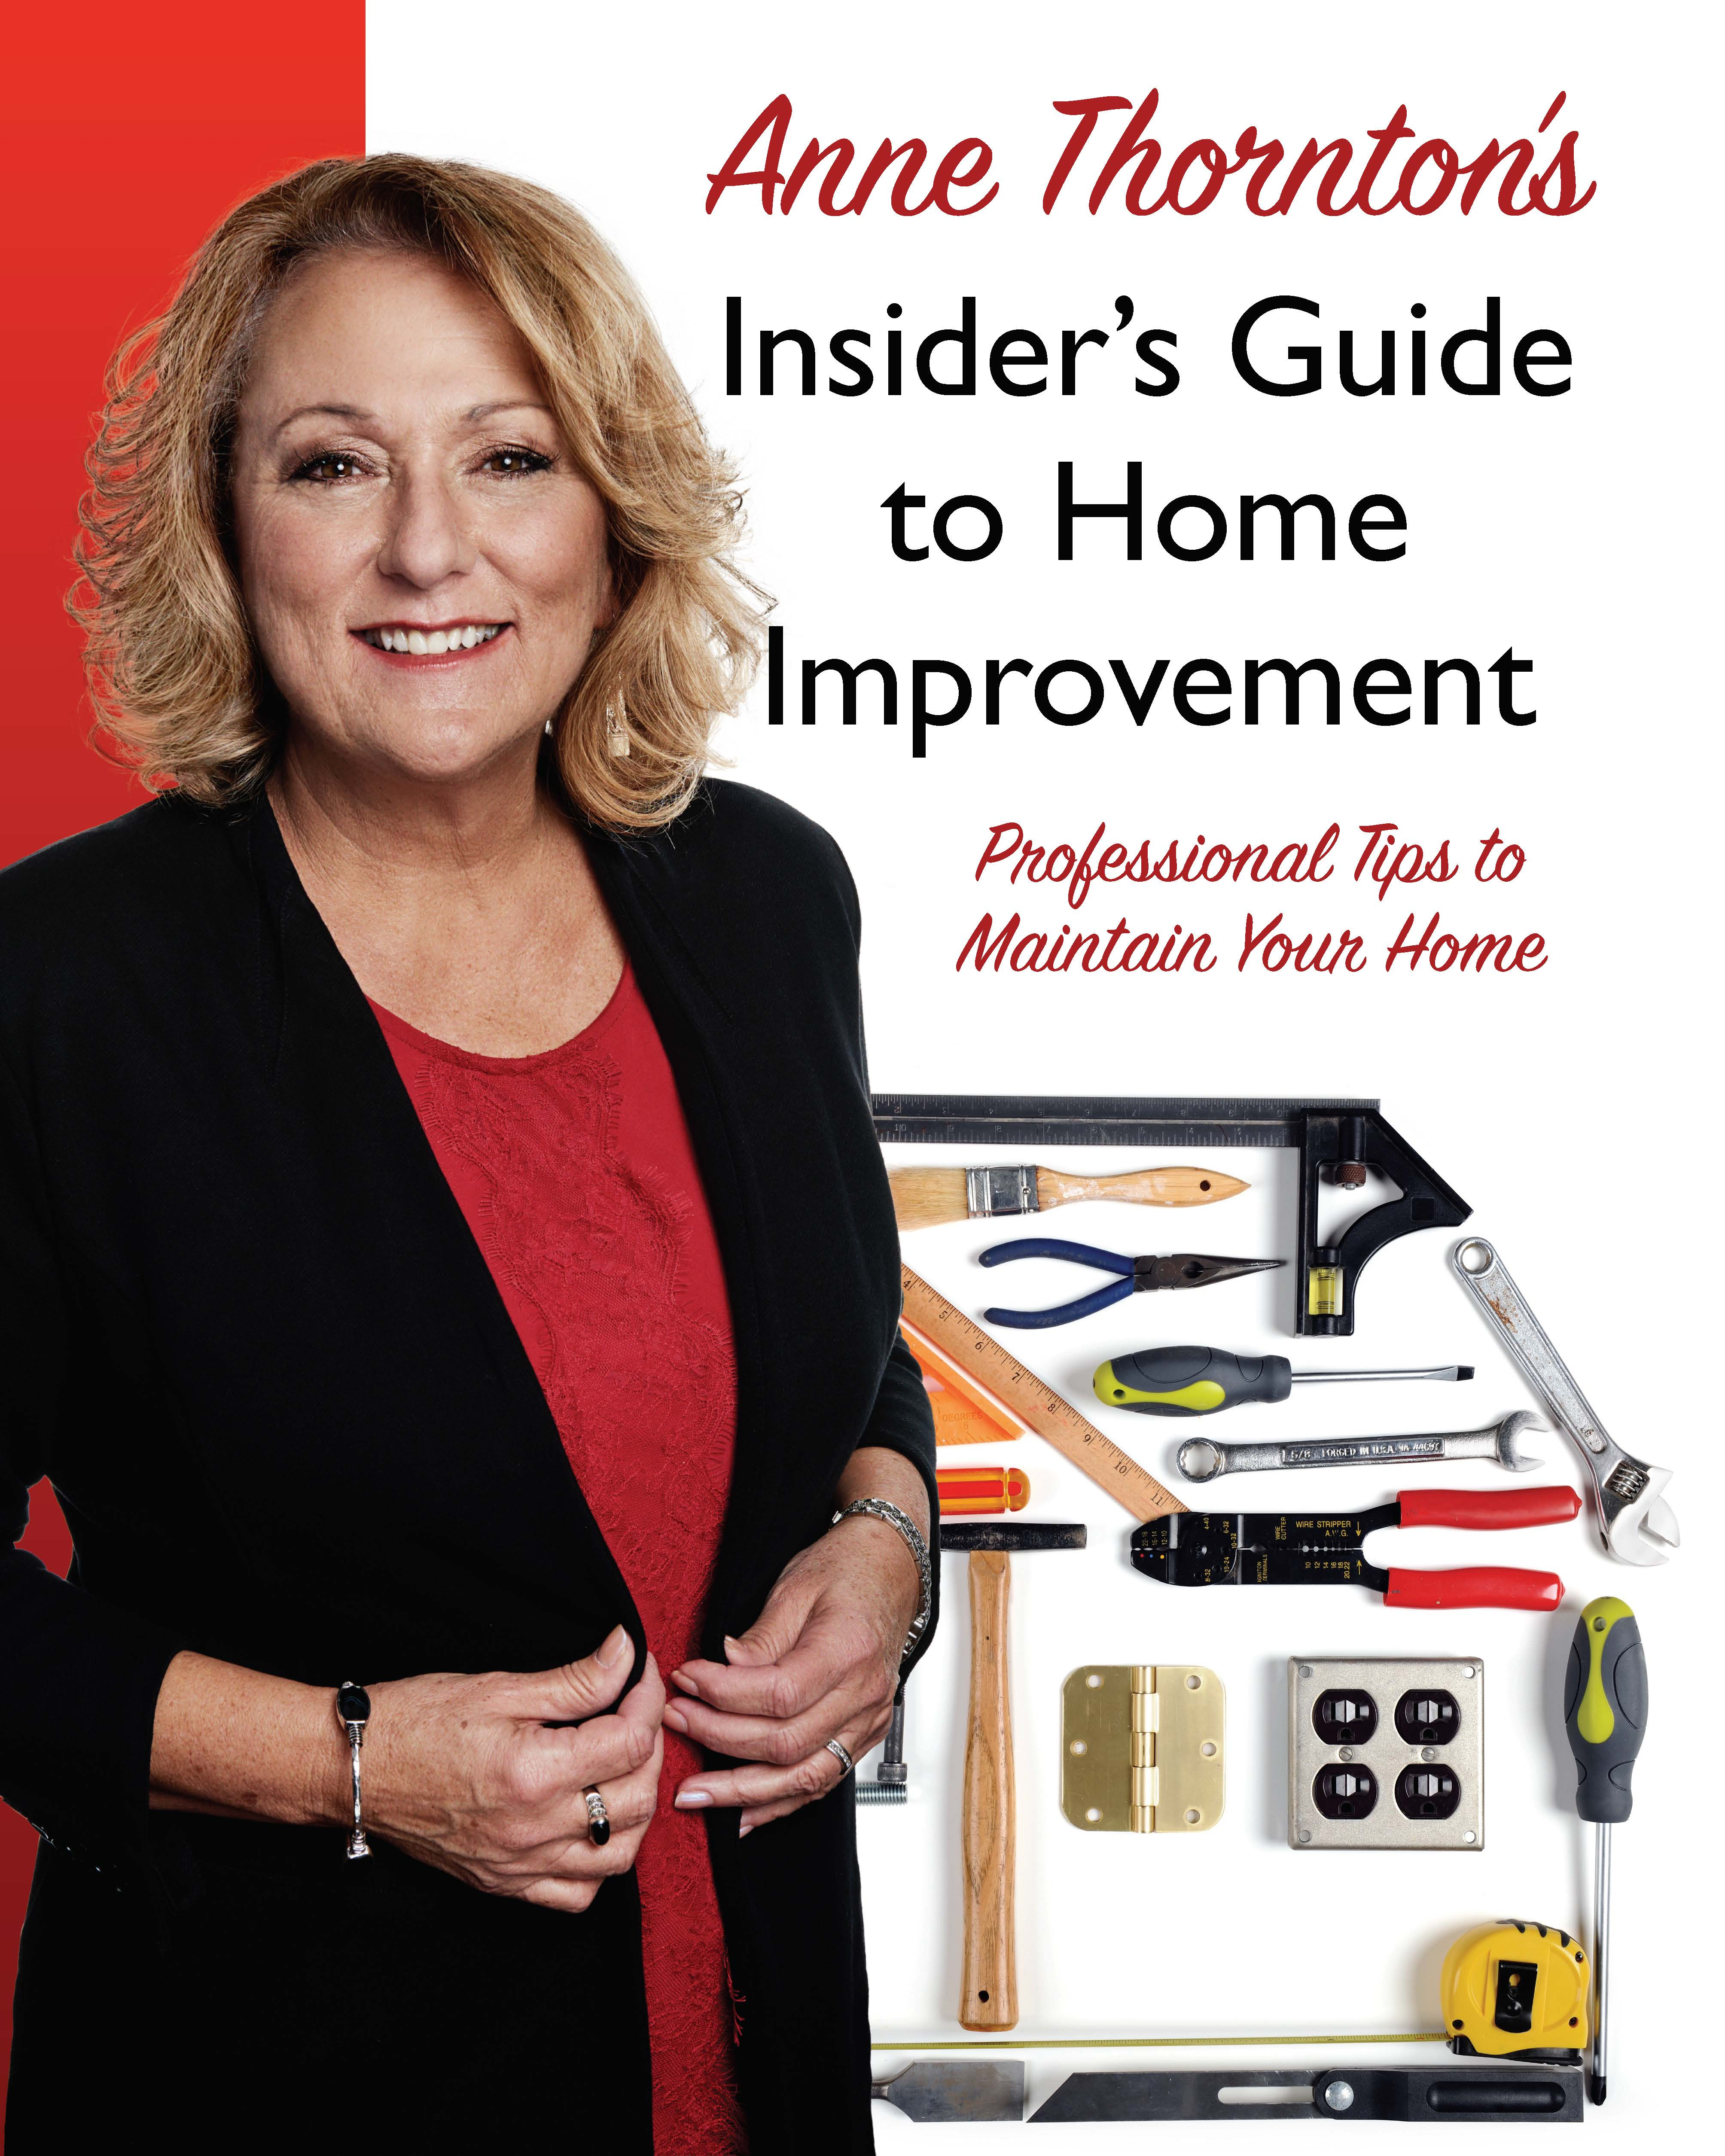 Women 39 s leader successful business owner anne thornton for Home improvement tips